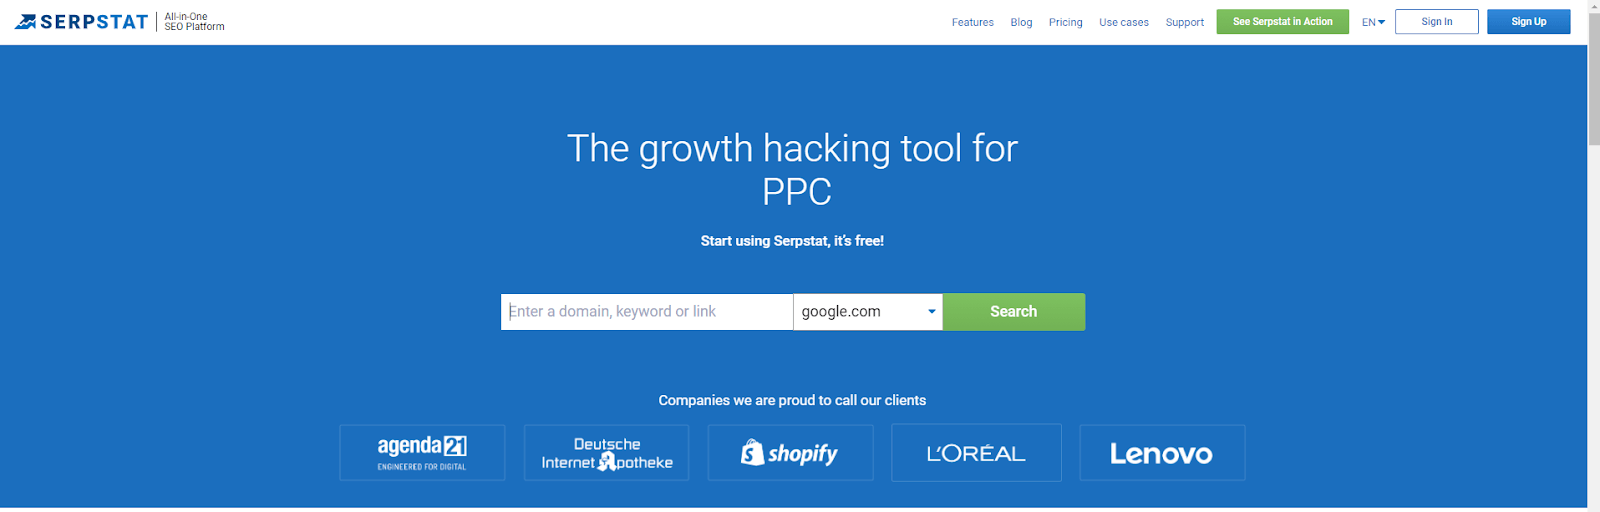 Growth Hacking PPC - Serpstat